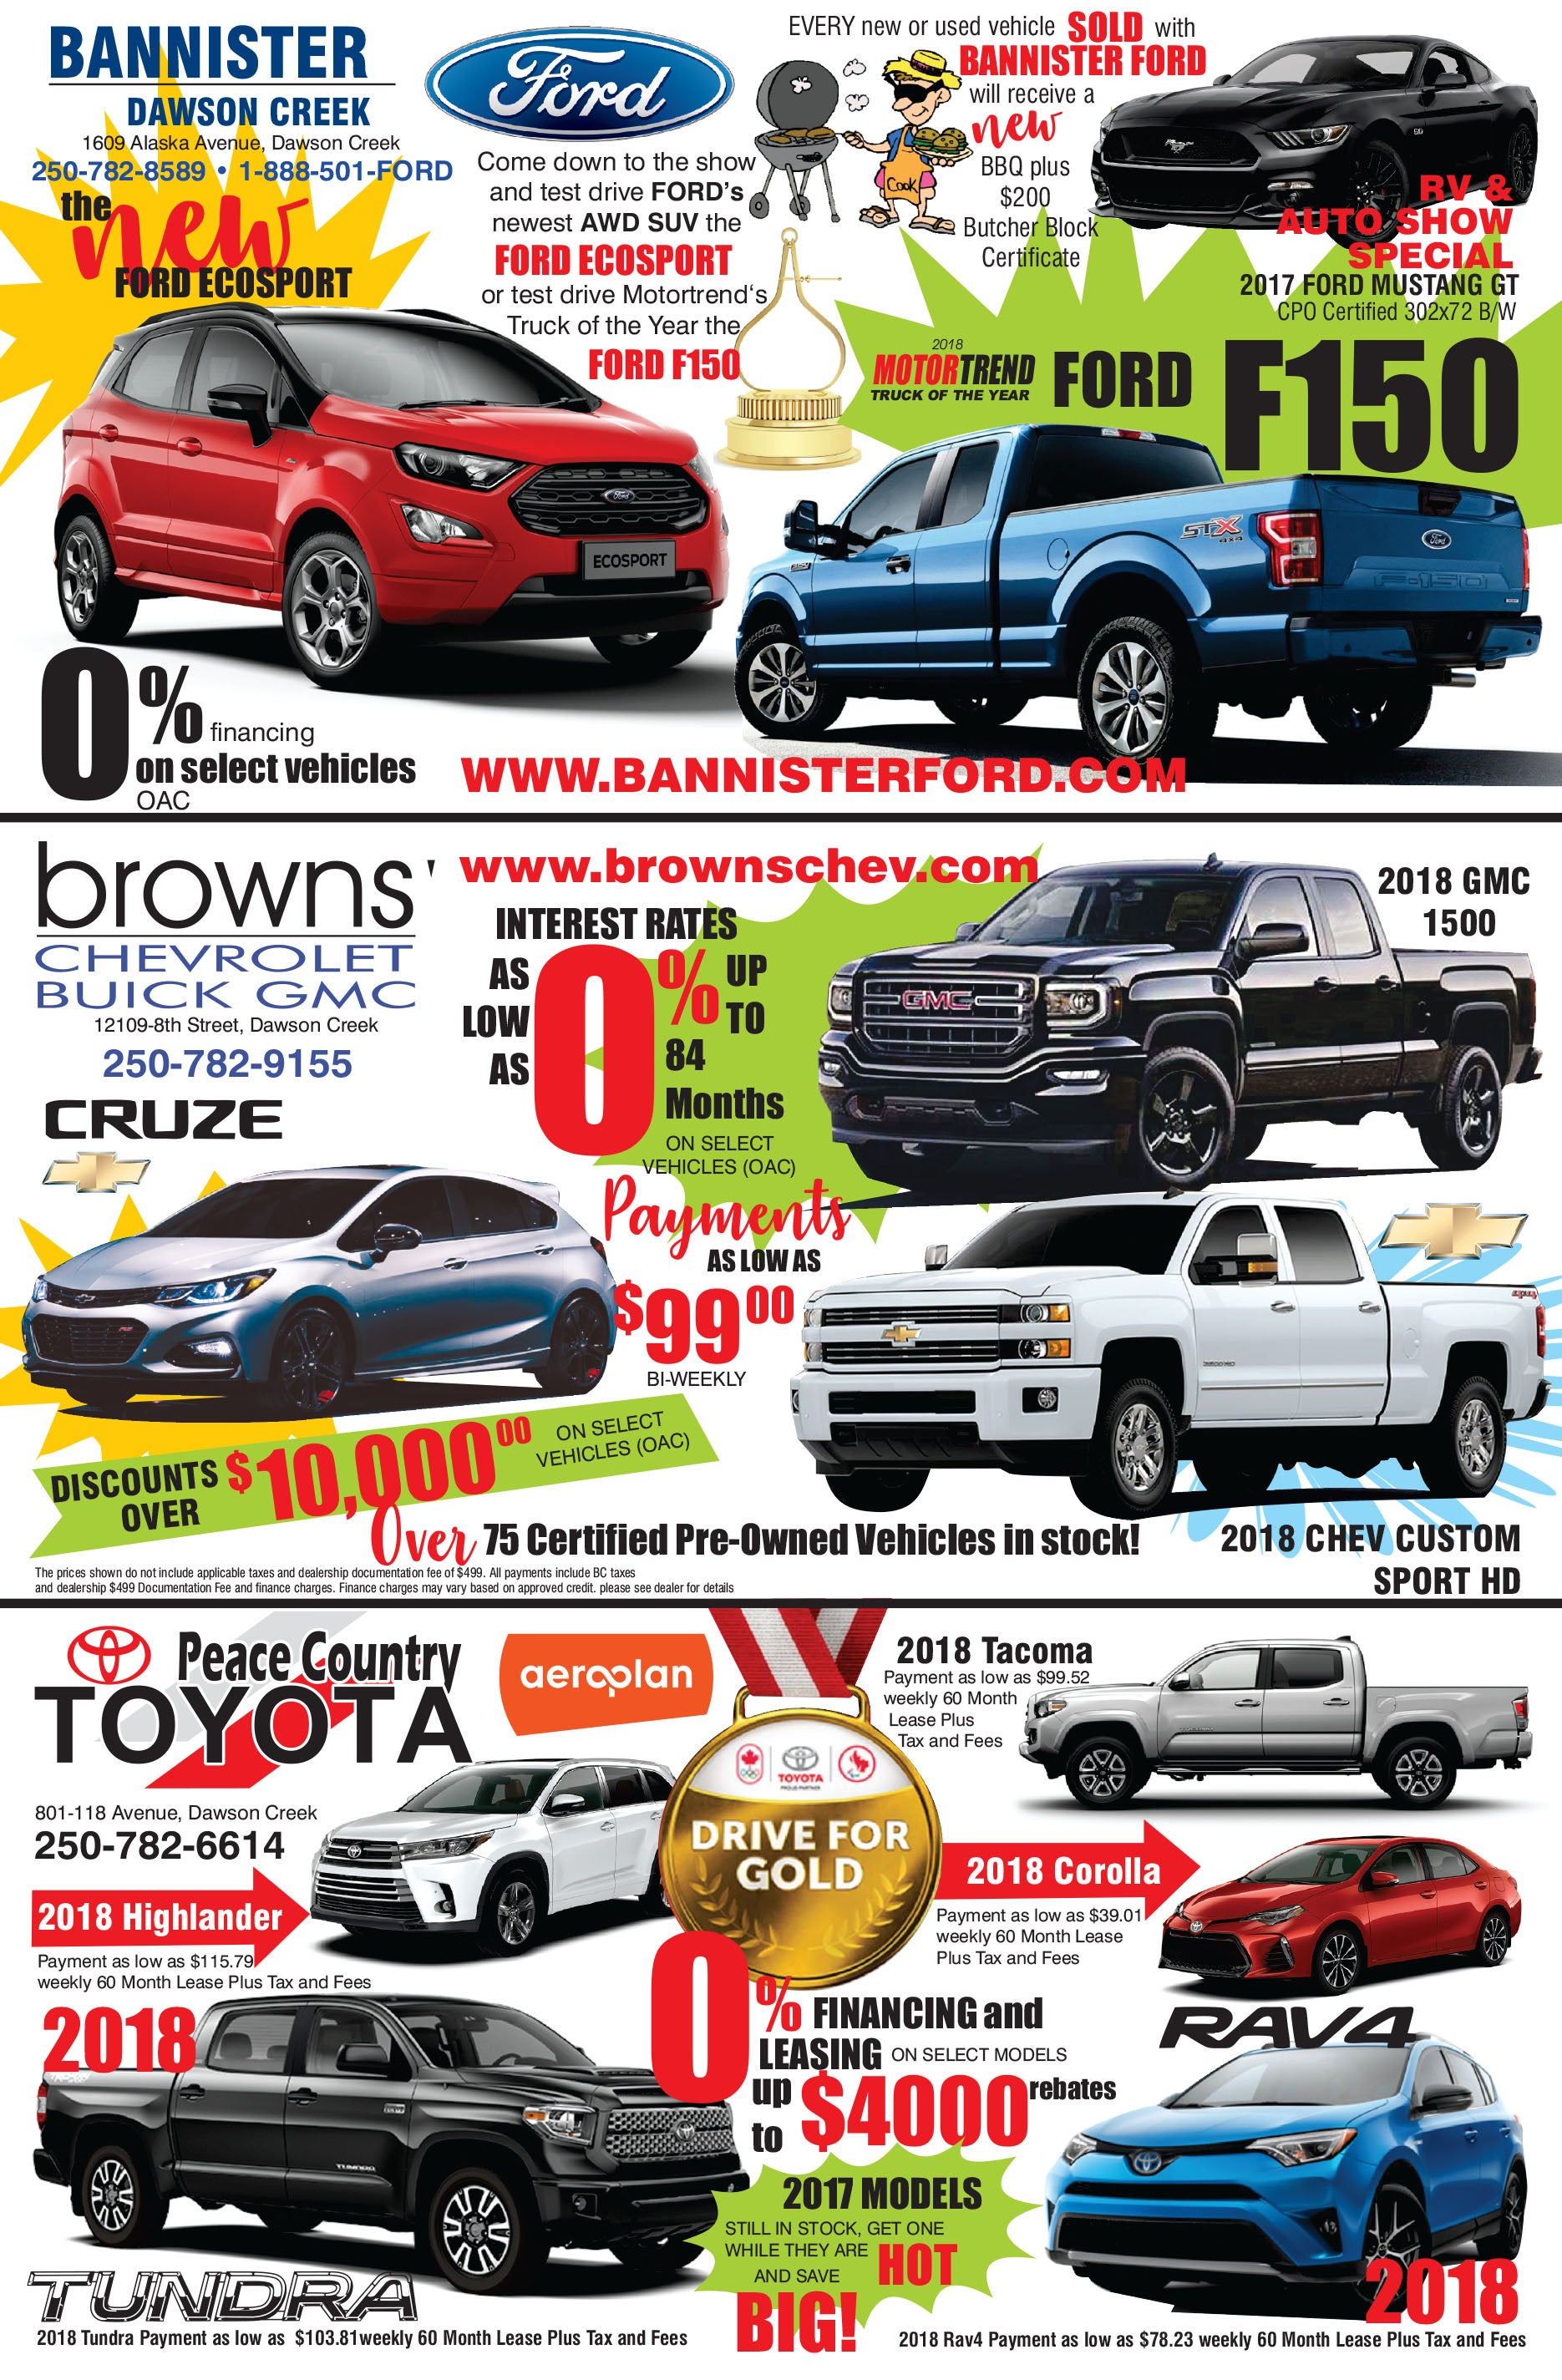 7 Car For Sale Flyer Monthly Planner Template Word Flyer Examples 2018  Fosters Flyer 2 7f66591c87  Car For Sale Template Word